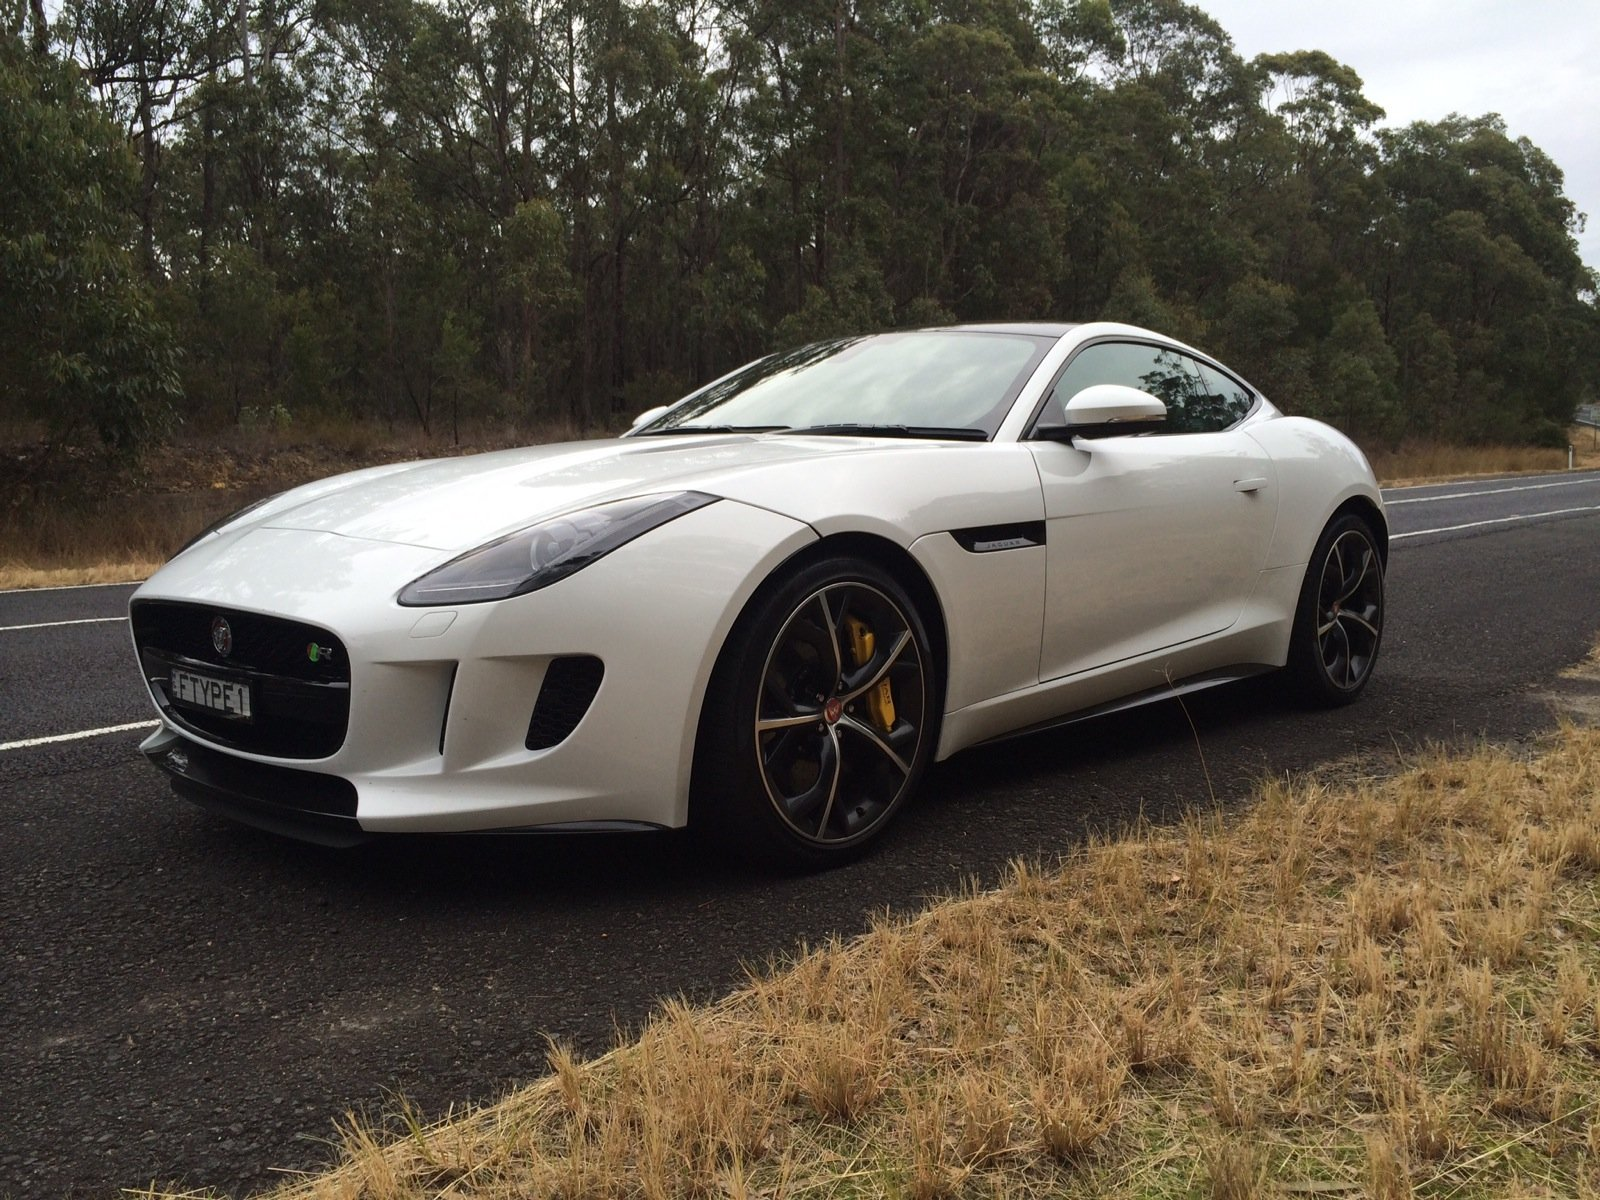 2015 jaguar f type r coupe review photos caradvice. Black Bedroom Furniture Sets. Home Design Ideas